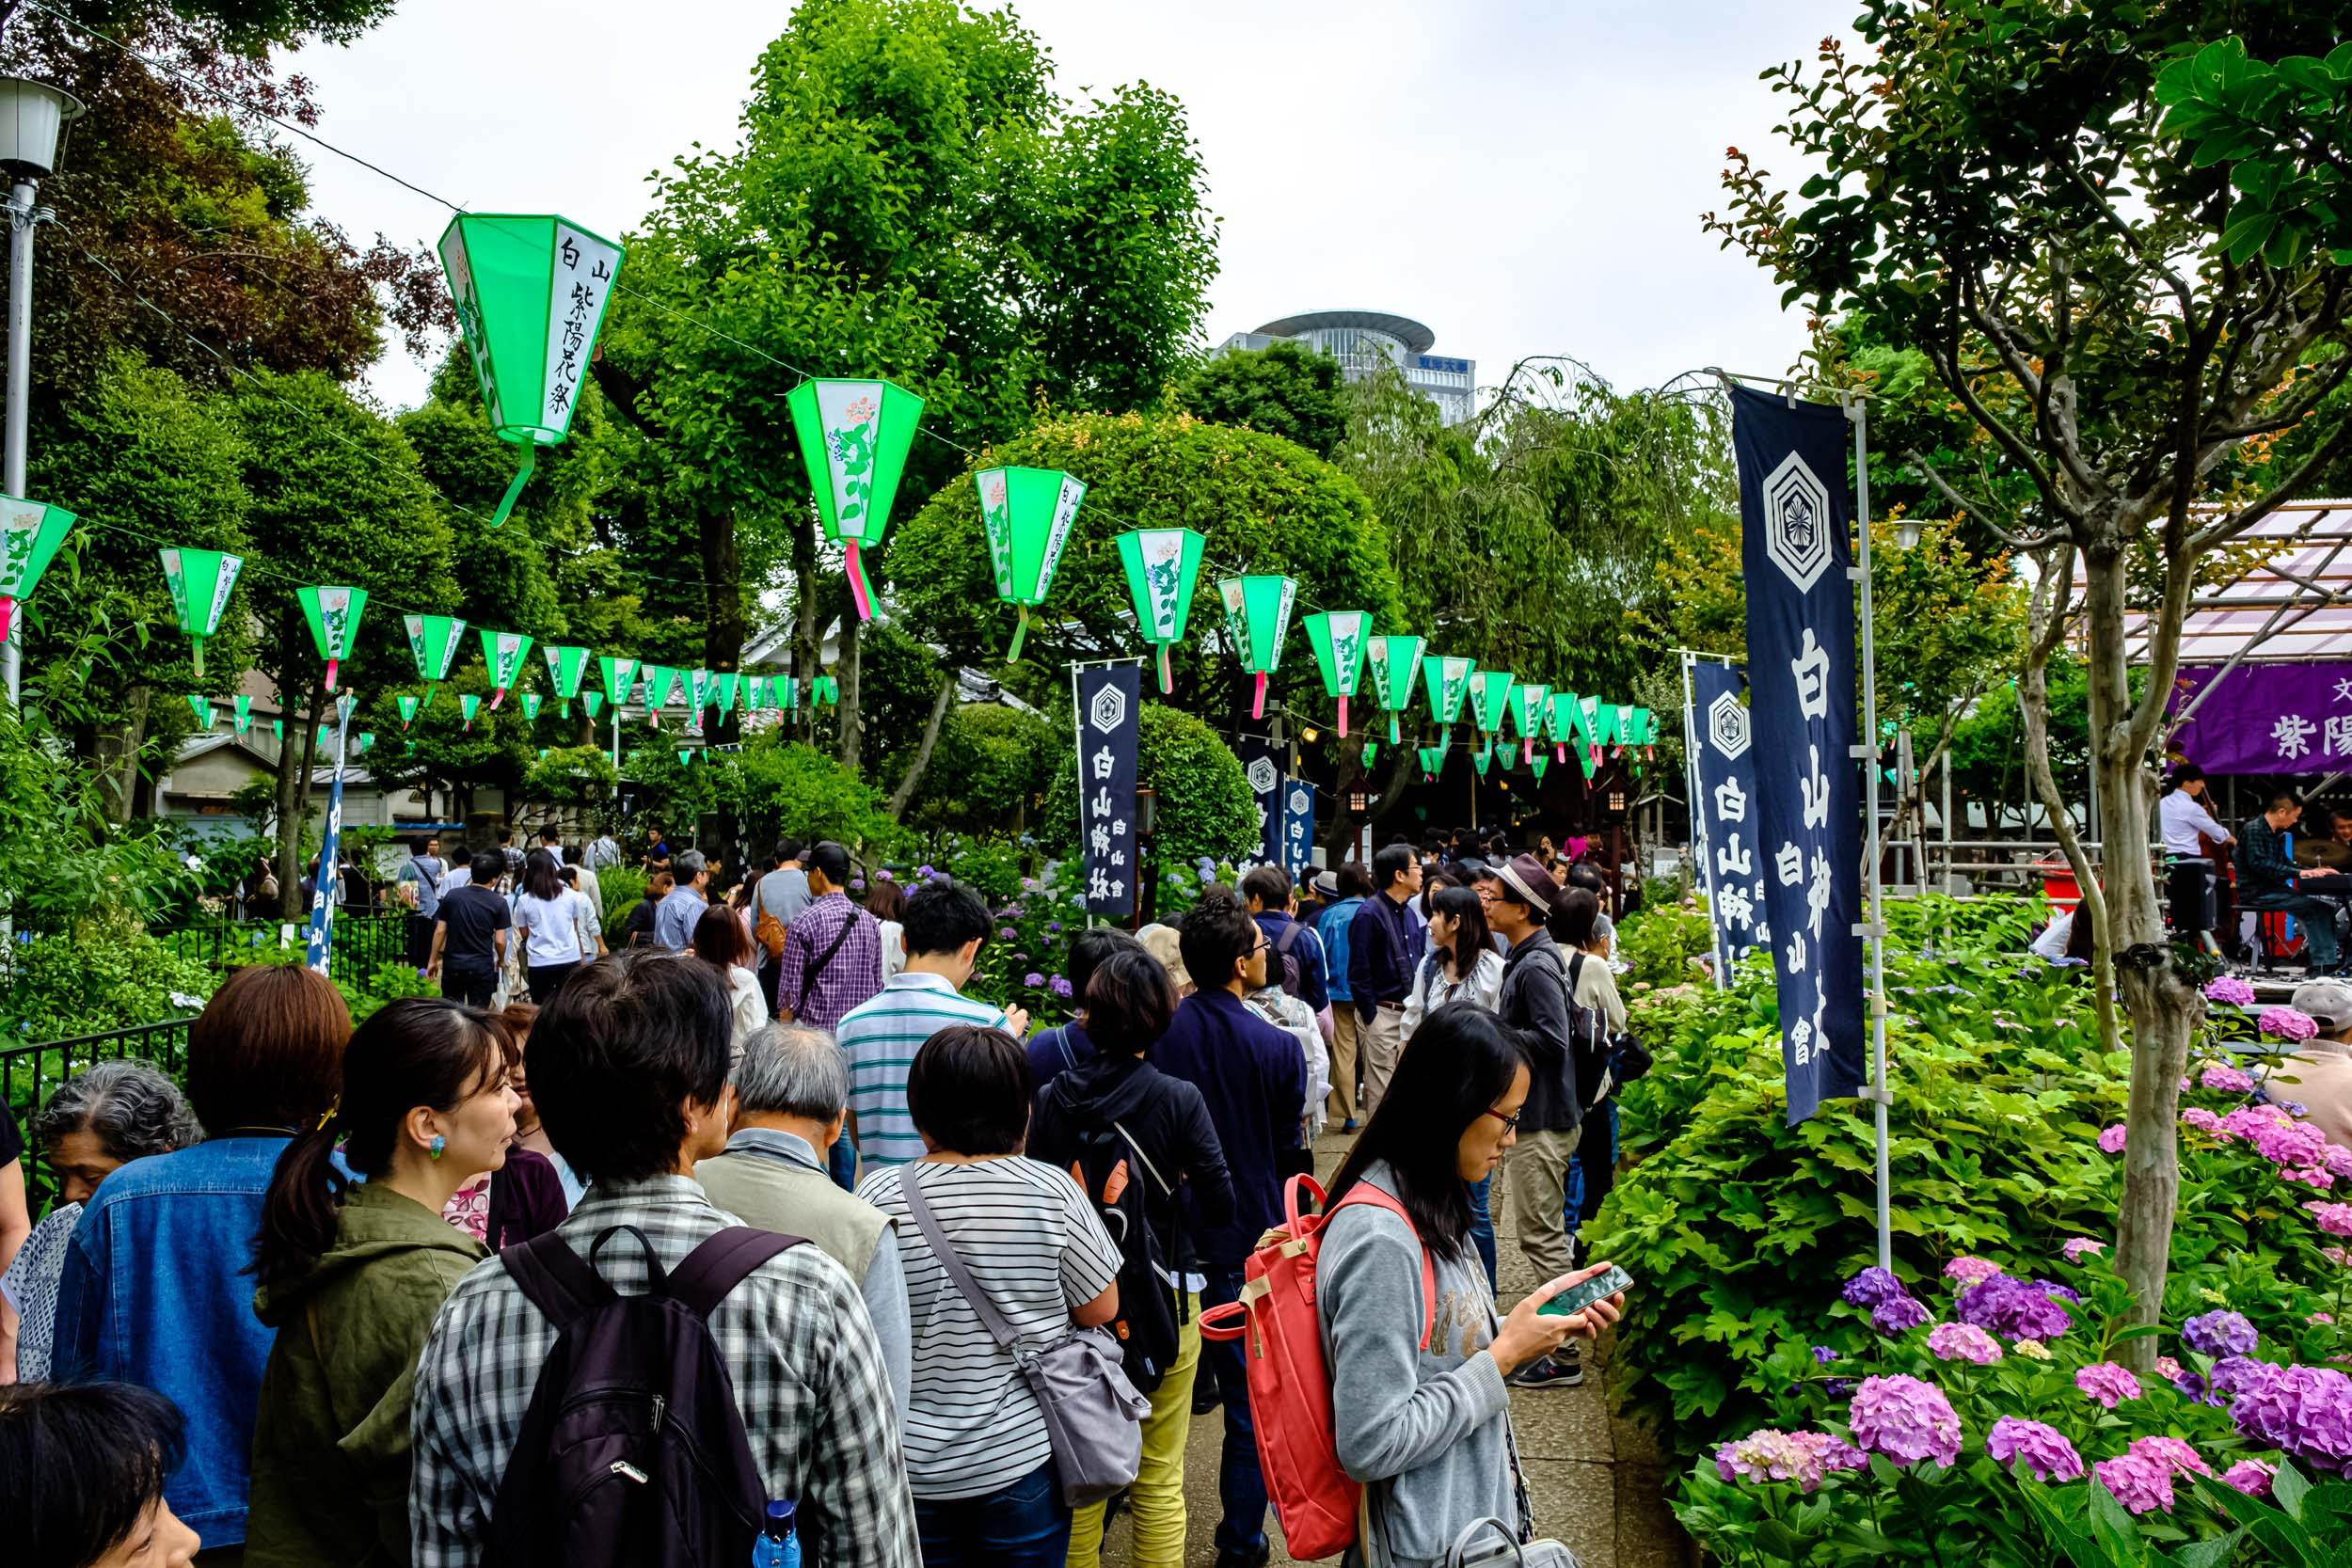 During the Hydrangea Festival, lots of people come to pray at the shrine